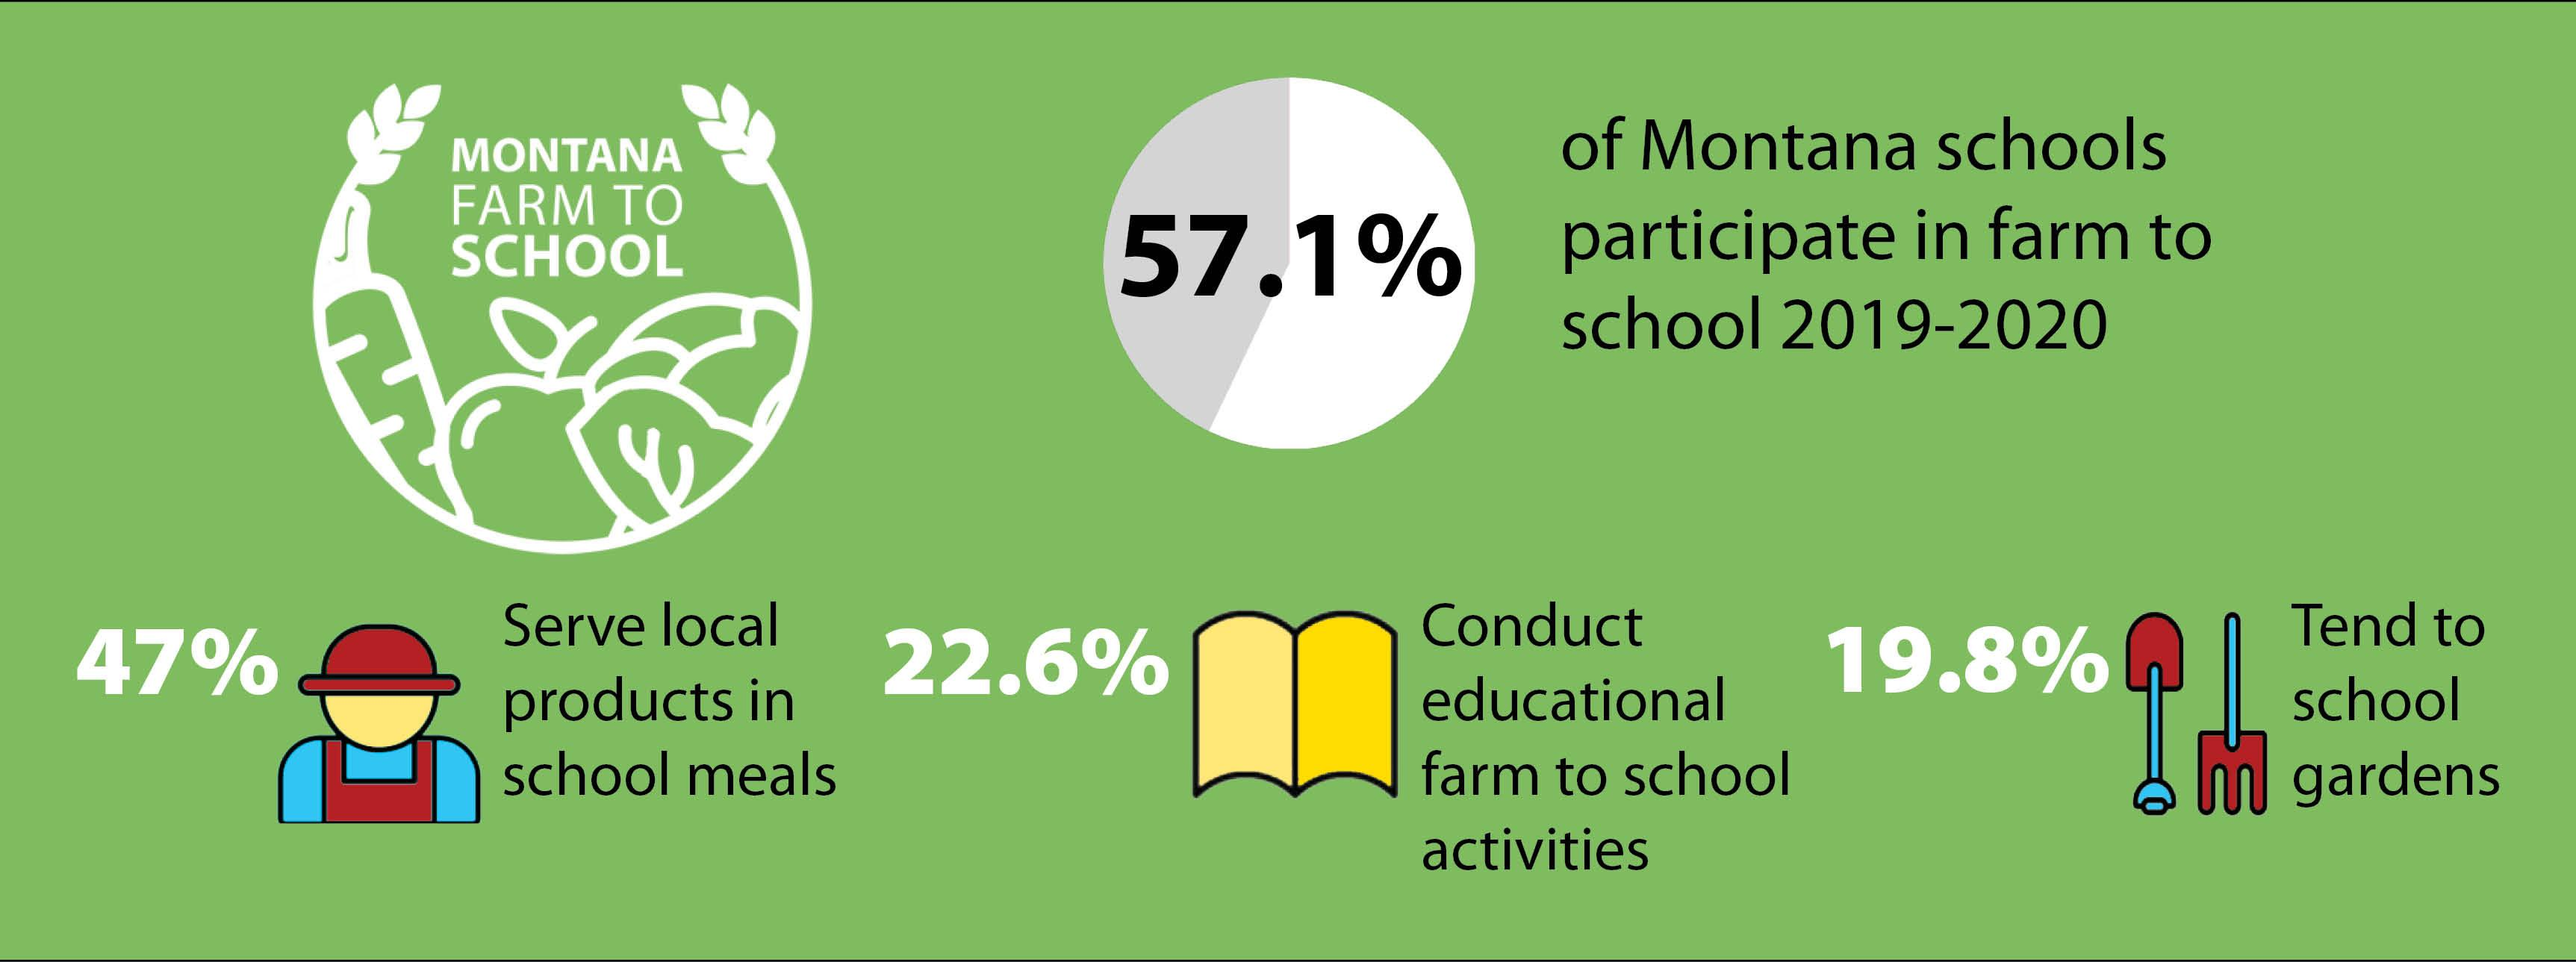 Montana Farm to School 2019-2020 data with icons and the Montana Farm to School logo